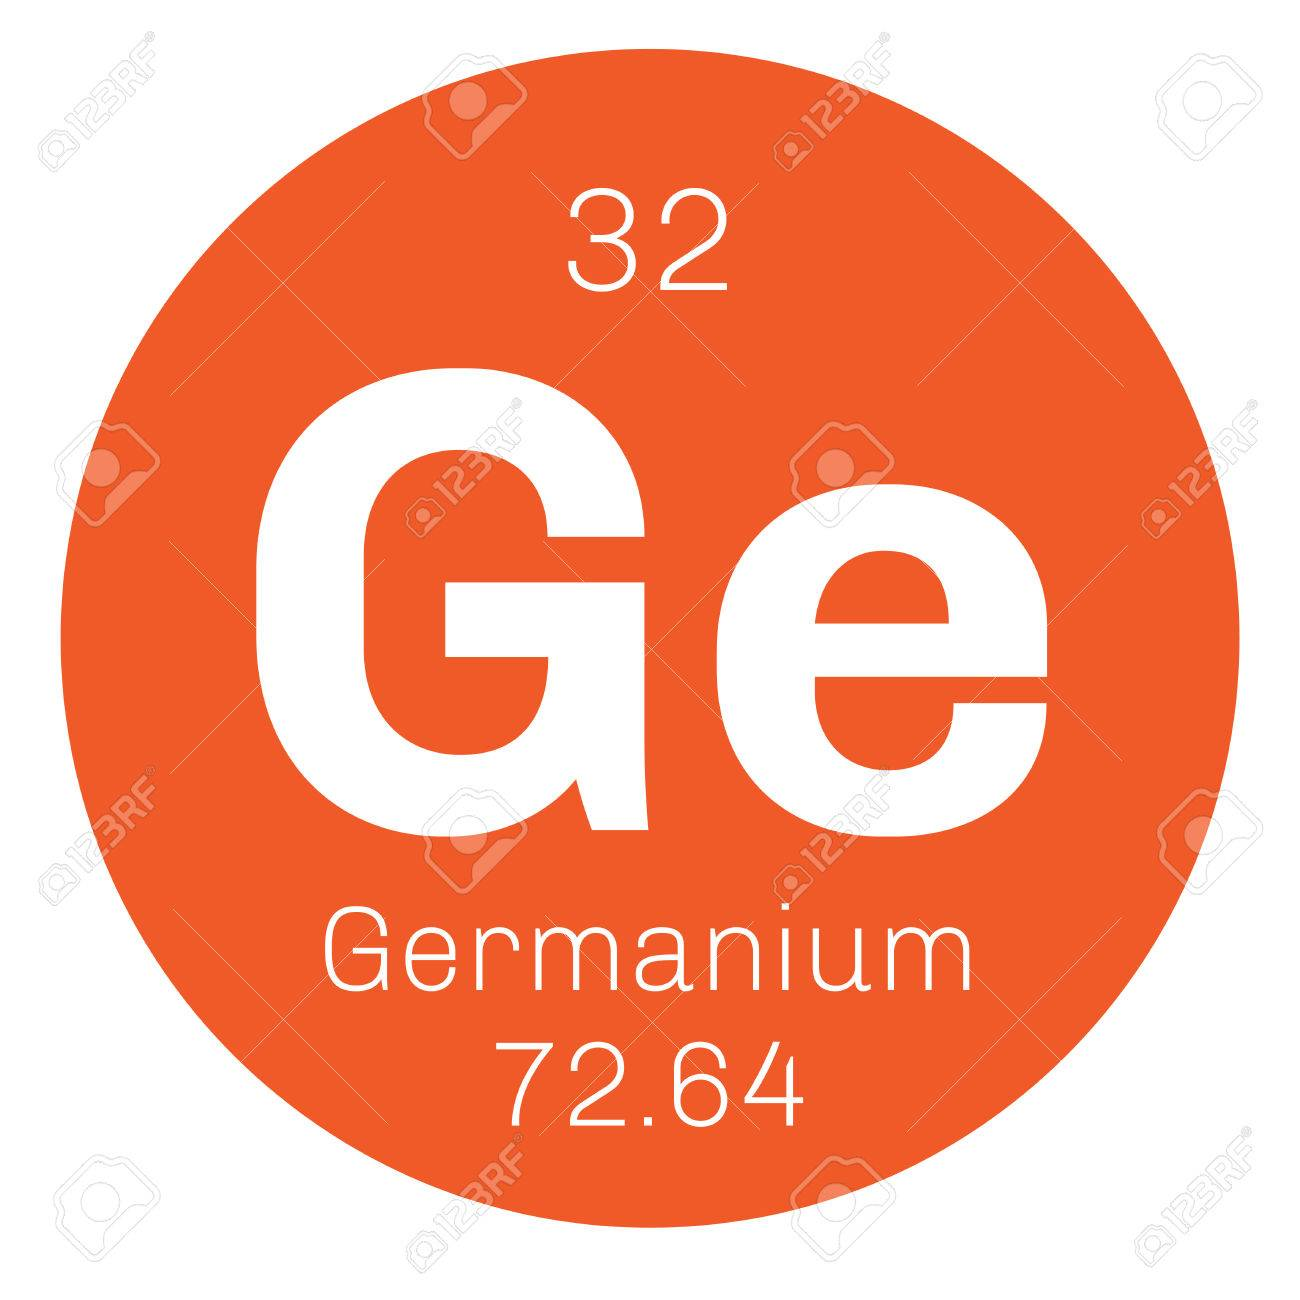 Germanium chemical element metalloid in carbon group a germanium chemical element metalloid in carbon group a semiconductor colored icon with atomic urtaz Image collections